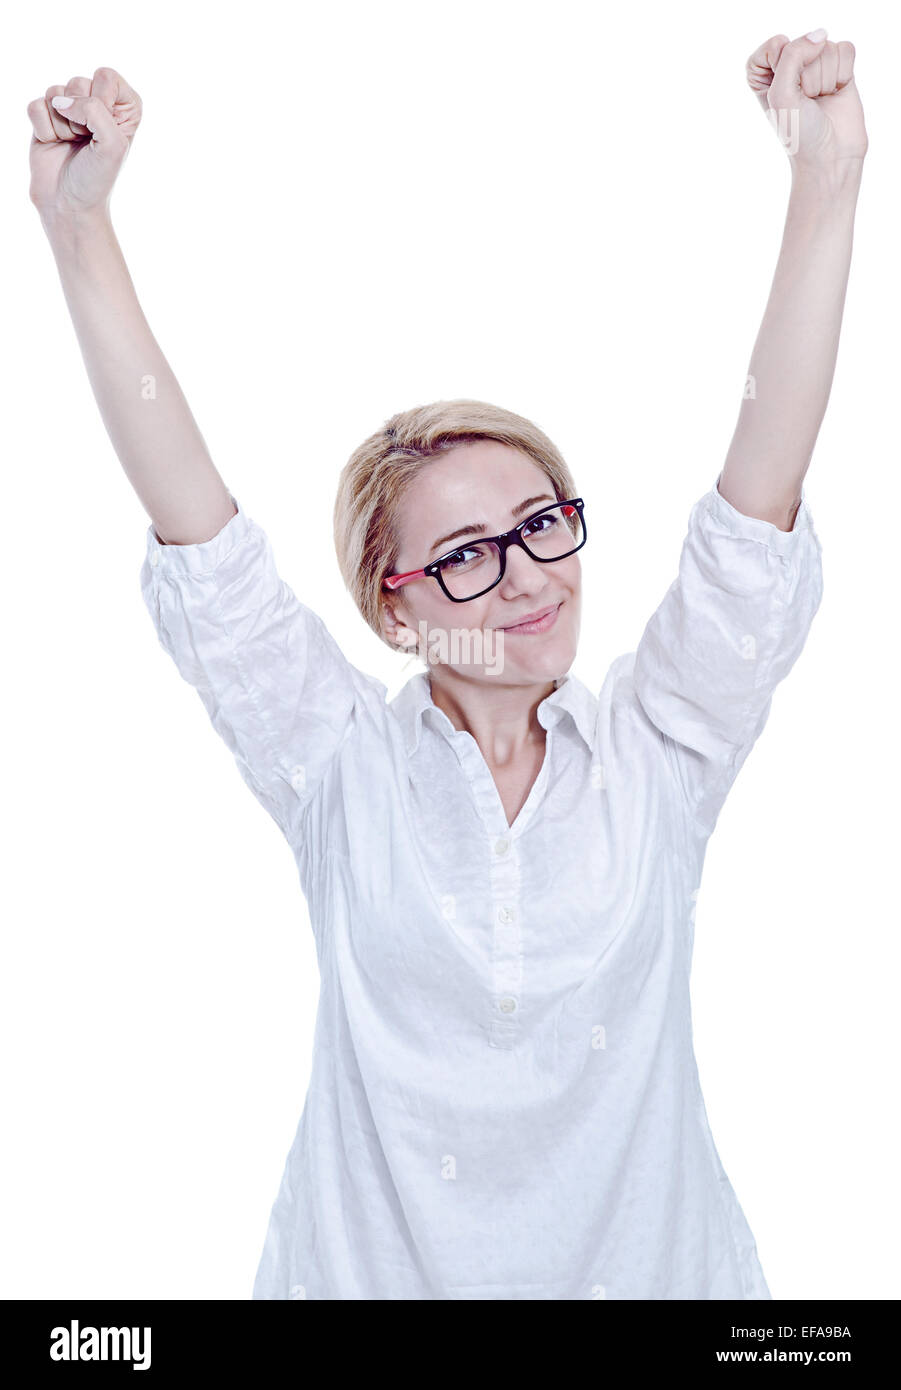 Cheerful woman celebrating on the white background - Stock Image